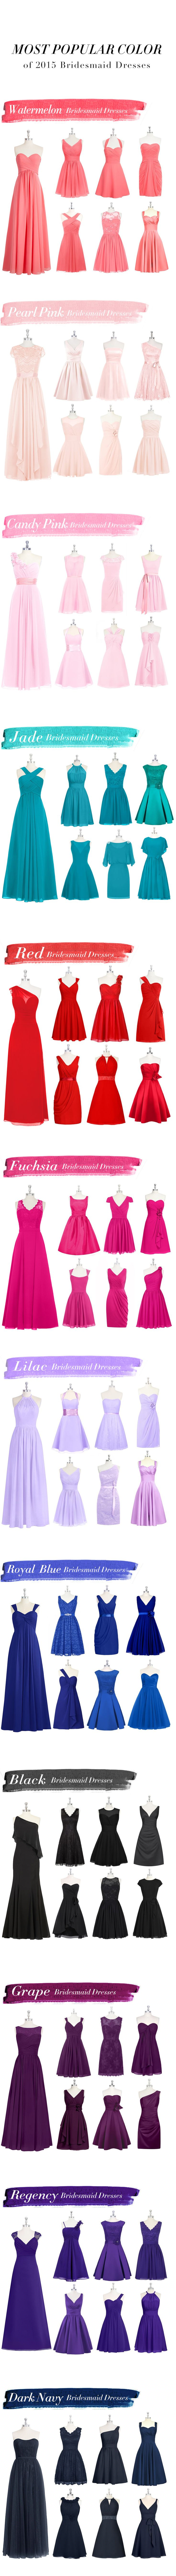 Azazie: Most Popular Bridesmaid Dresses of 2015